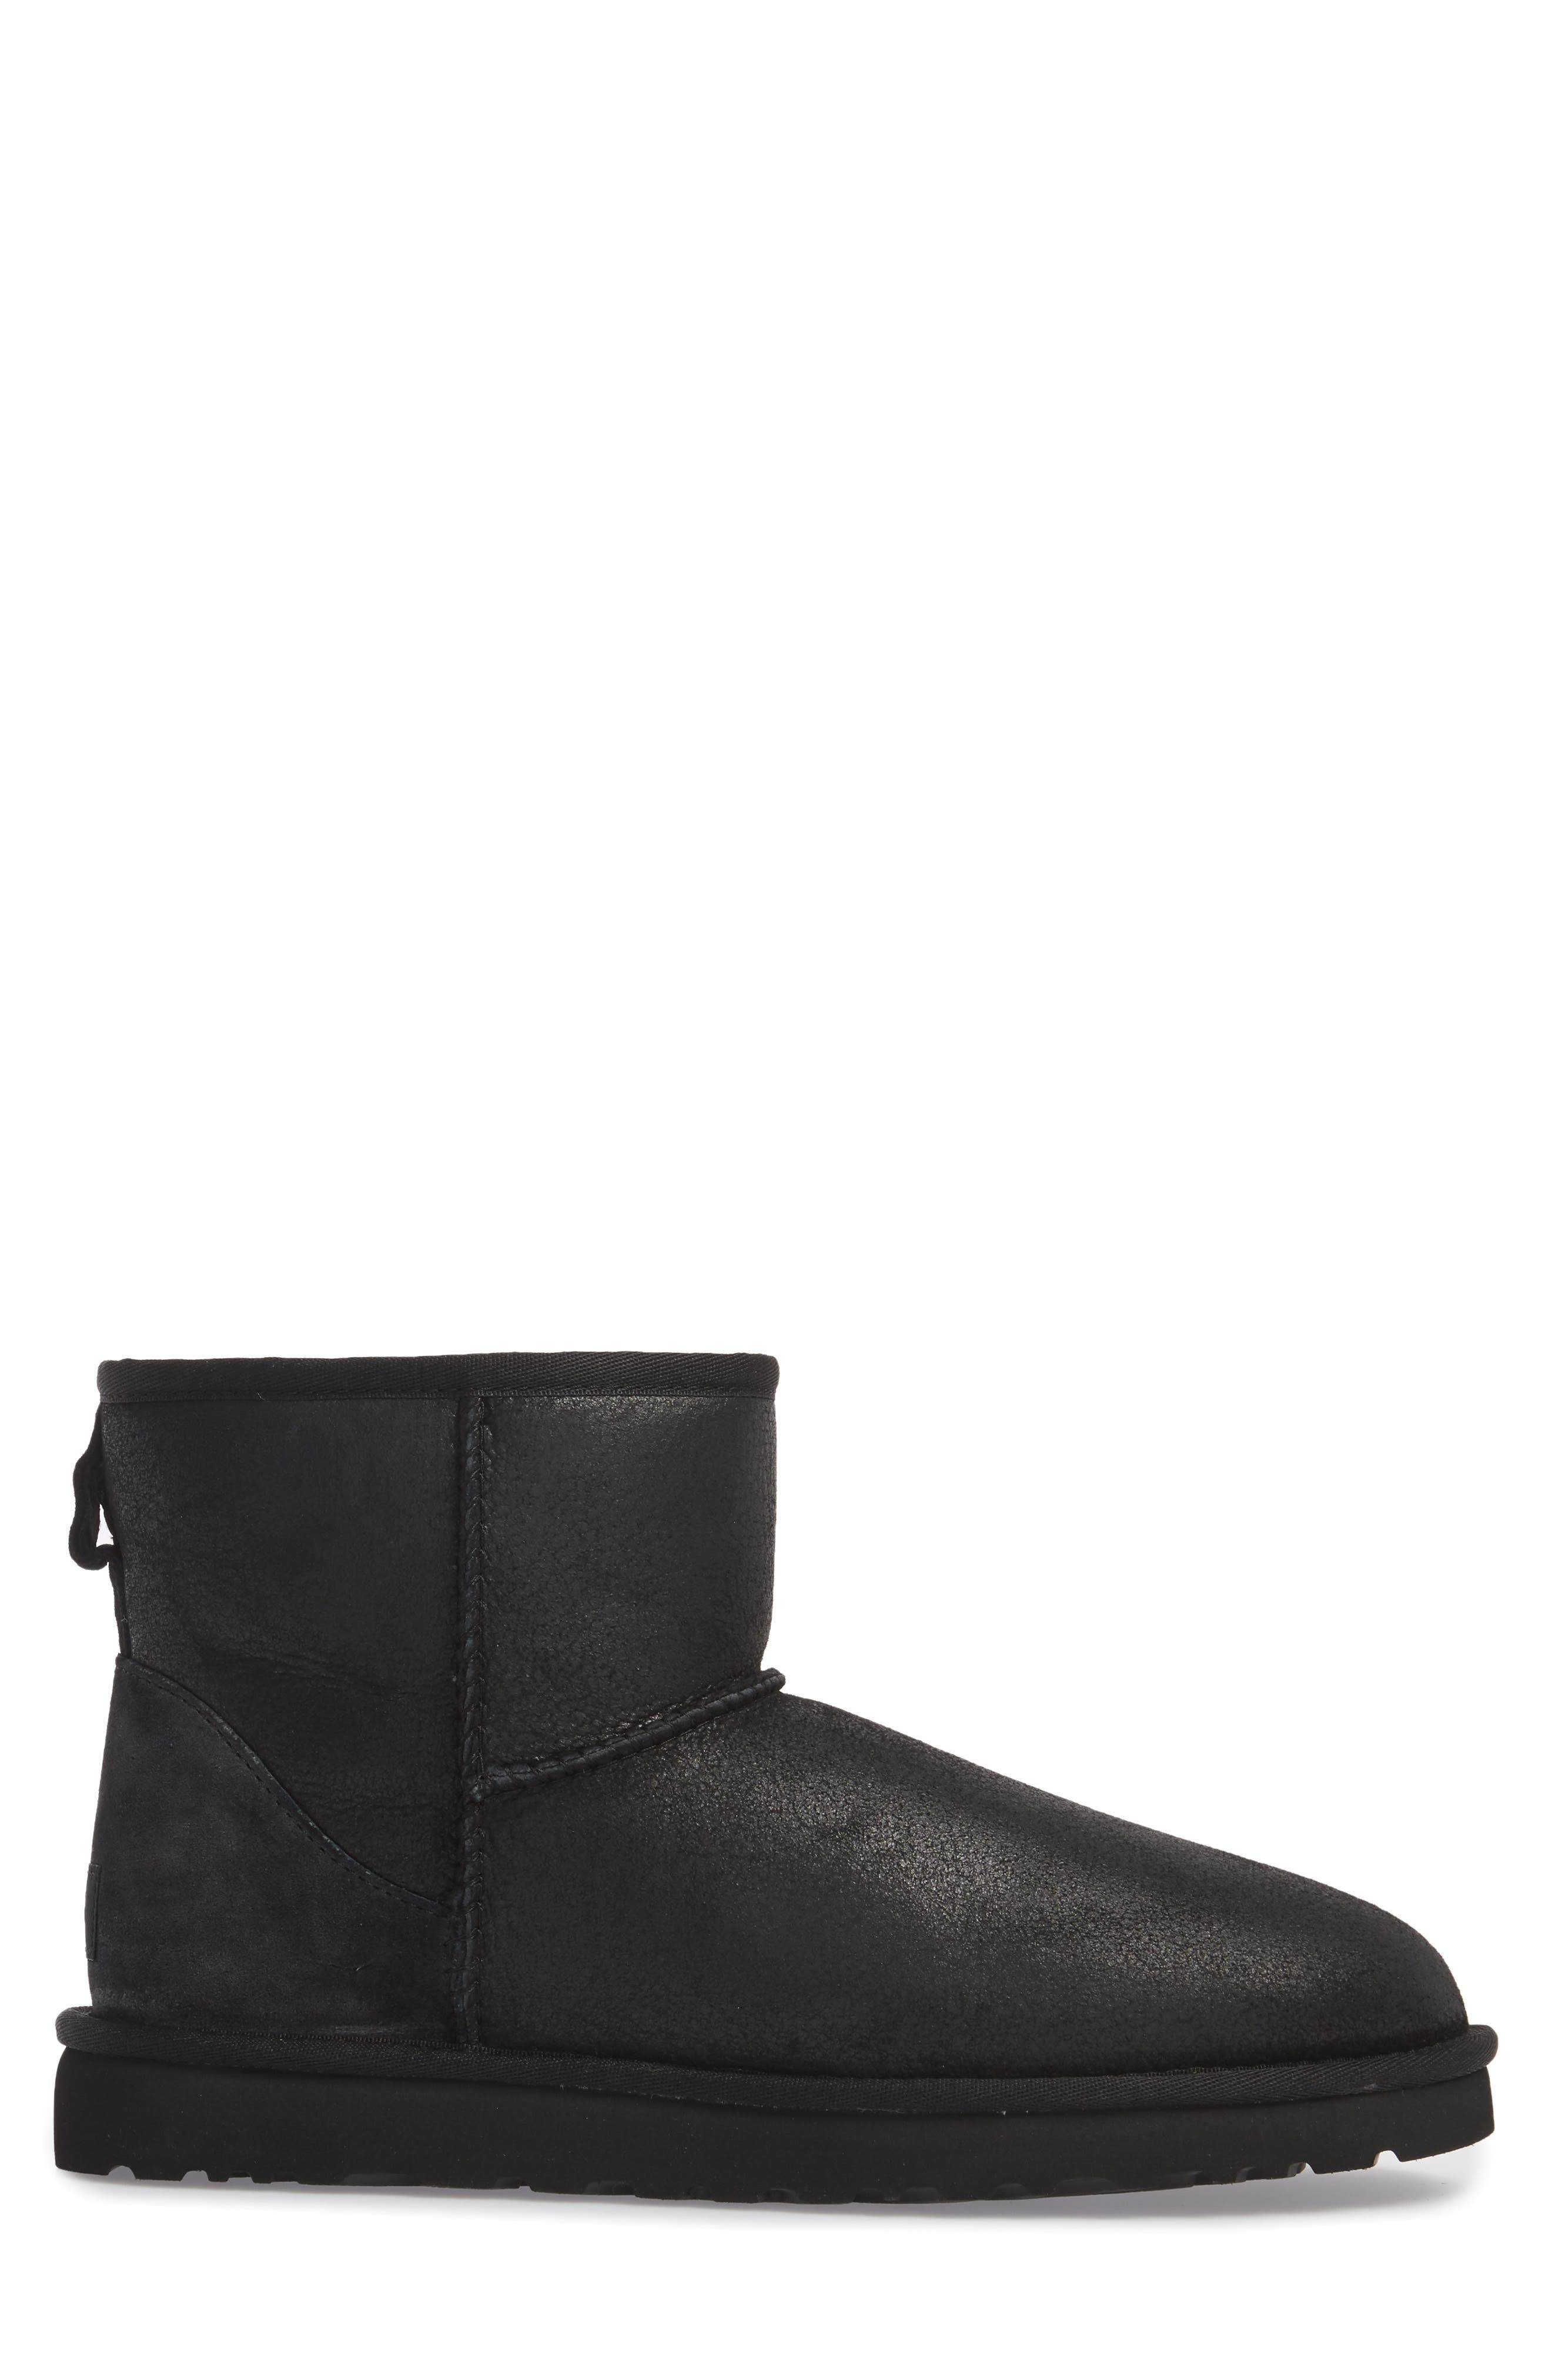 Classic Mini Bomber Boot with Genuine Shearling or UGGpure<sup>™</sup> Lining,                             Alternate thumbnail 3, color,                             BOMBER JACKET BLACK